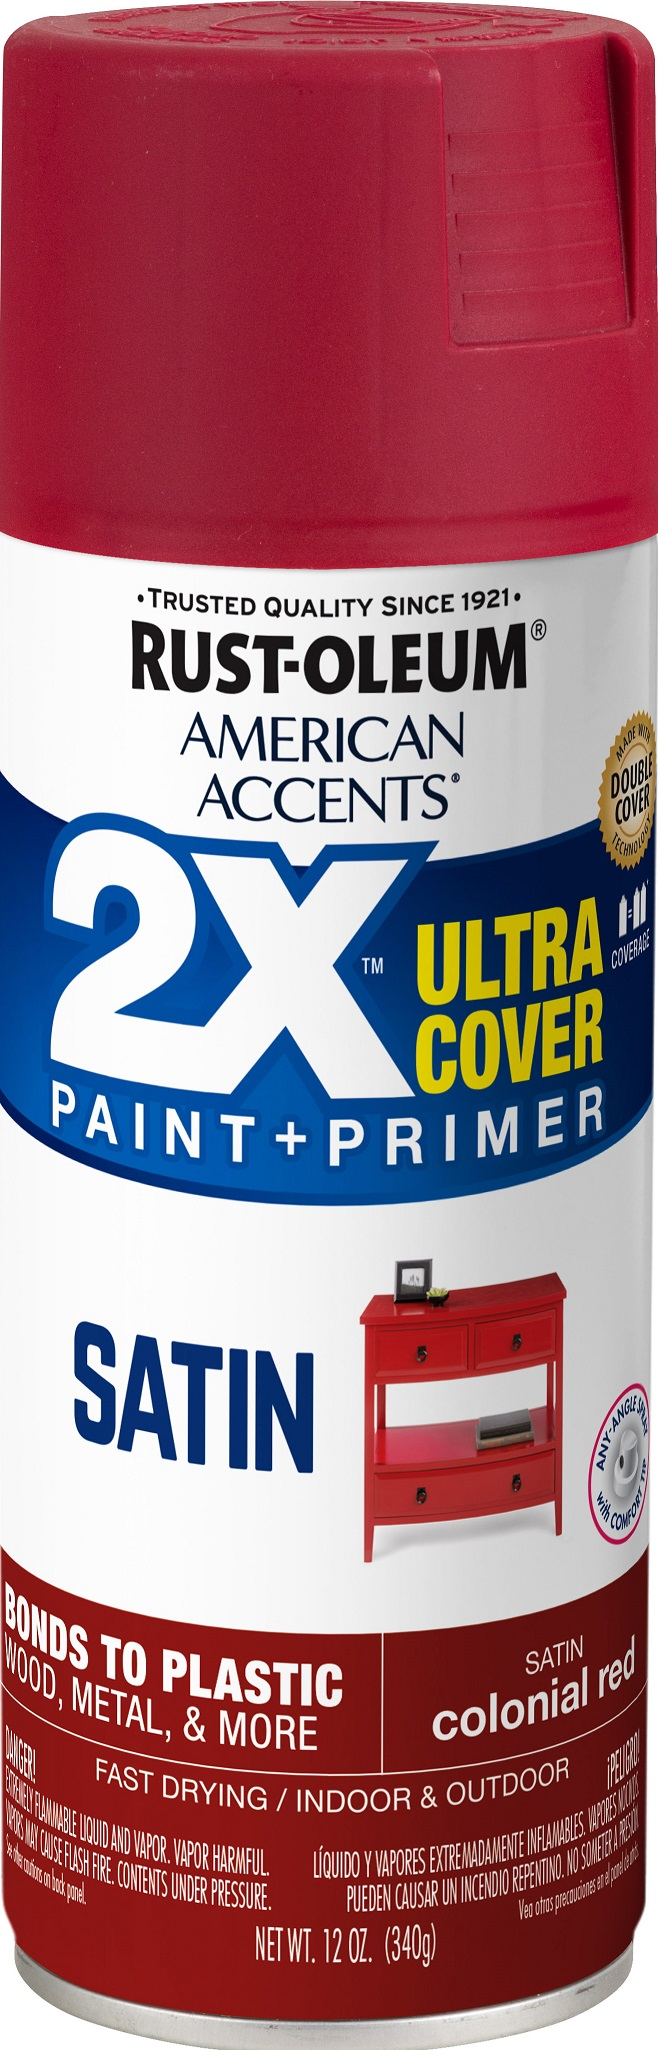 (3 Pack) Rust-Oleum American Accents Ultra Cover 2X Satin Colonial Red Spray Paint and Primer in 1, 12 oz